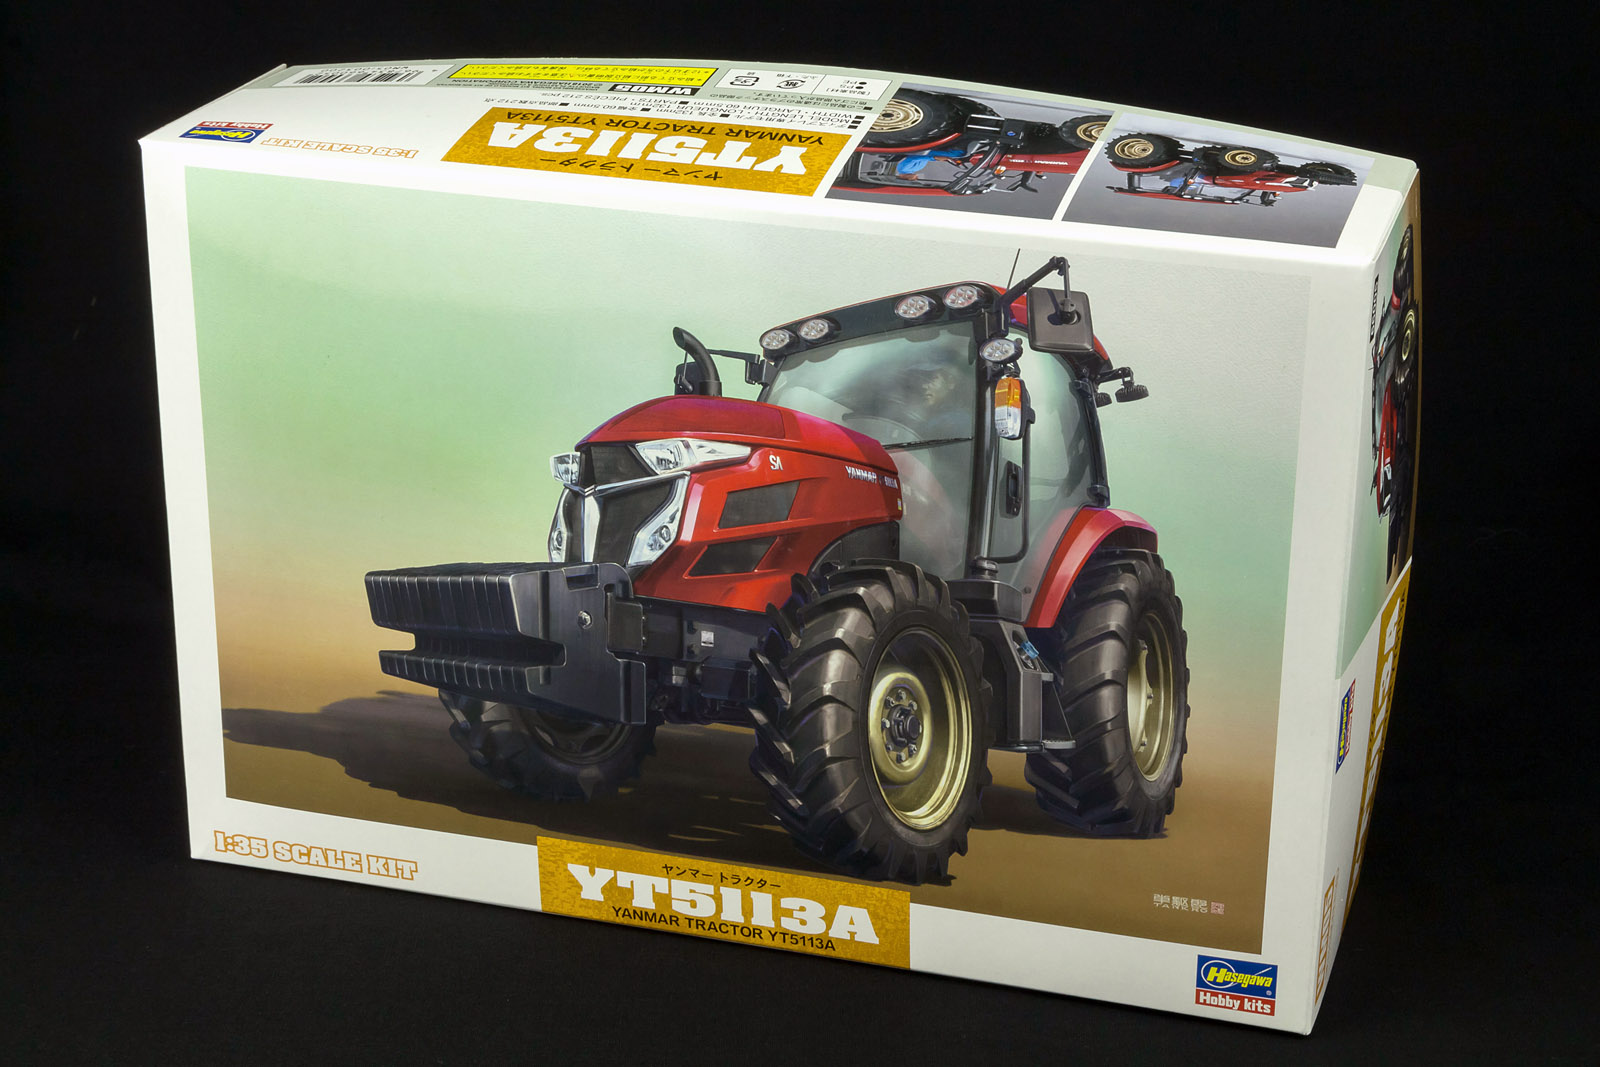 The Modelling News: In-Boxed: 1/35th scale Yanmar YT5113A